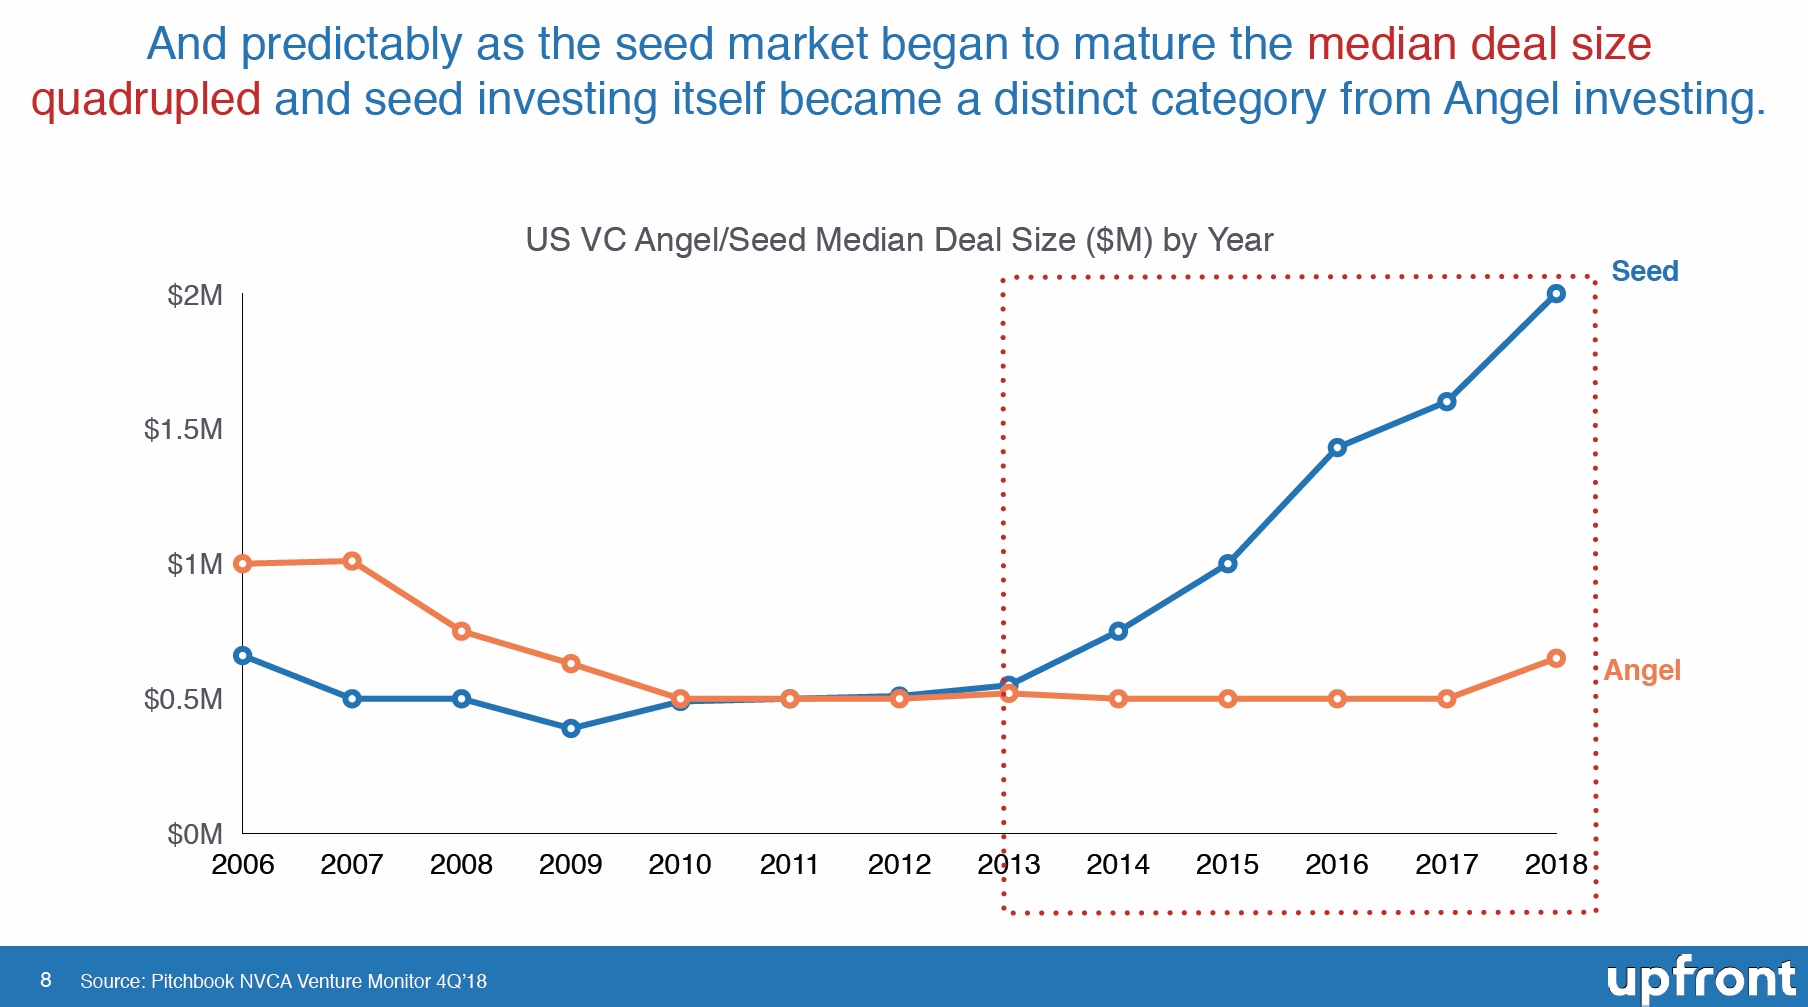 Why Has Seed Investing Declined? And What Does this Mean for